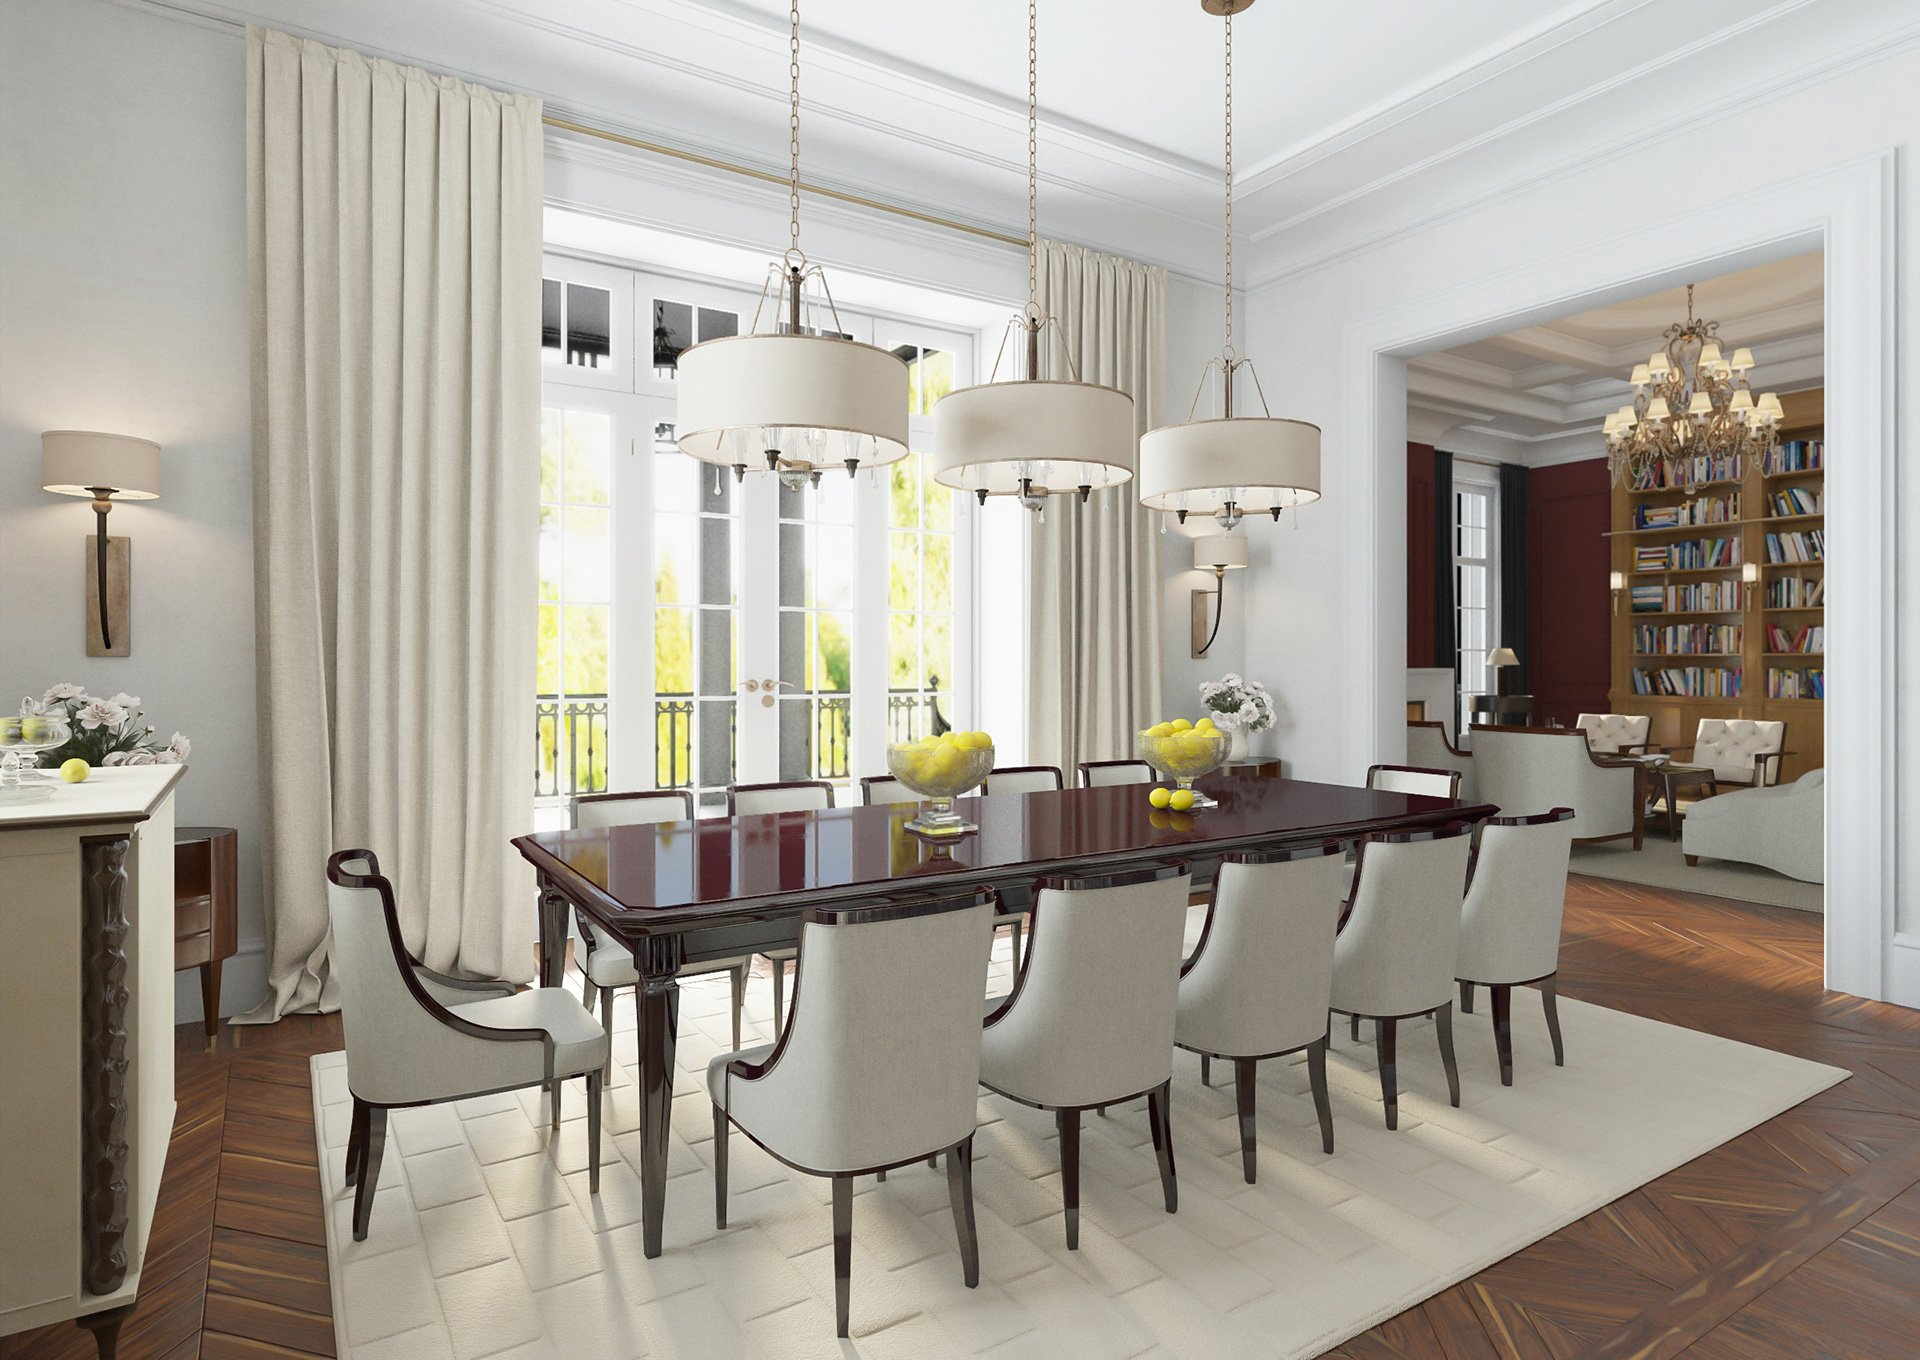 Dining area in a separate room